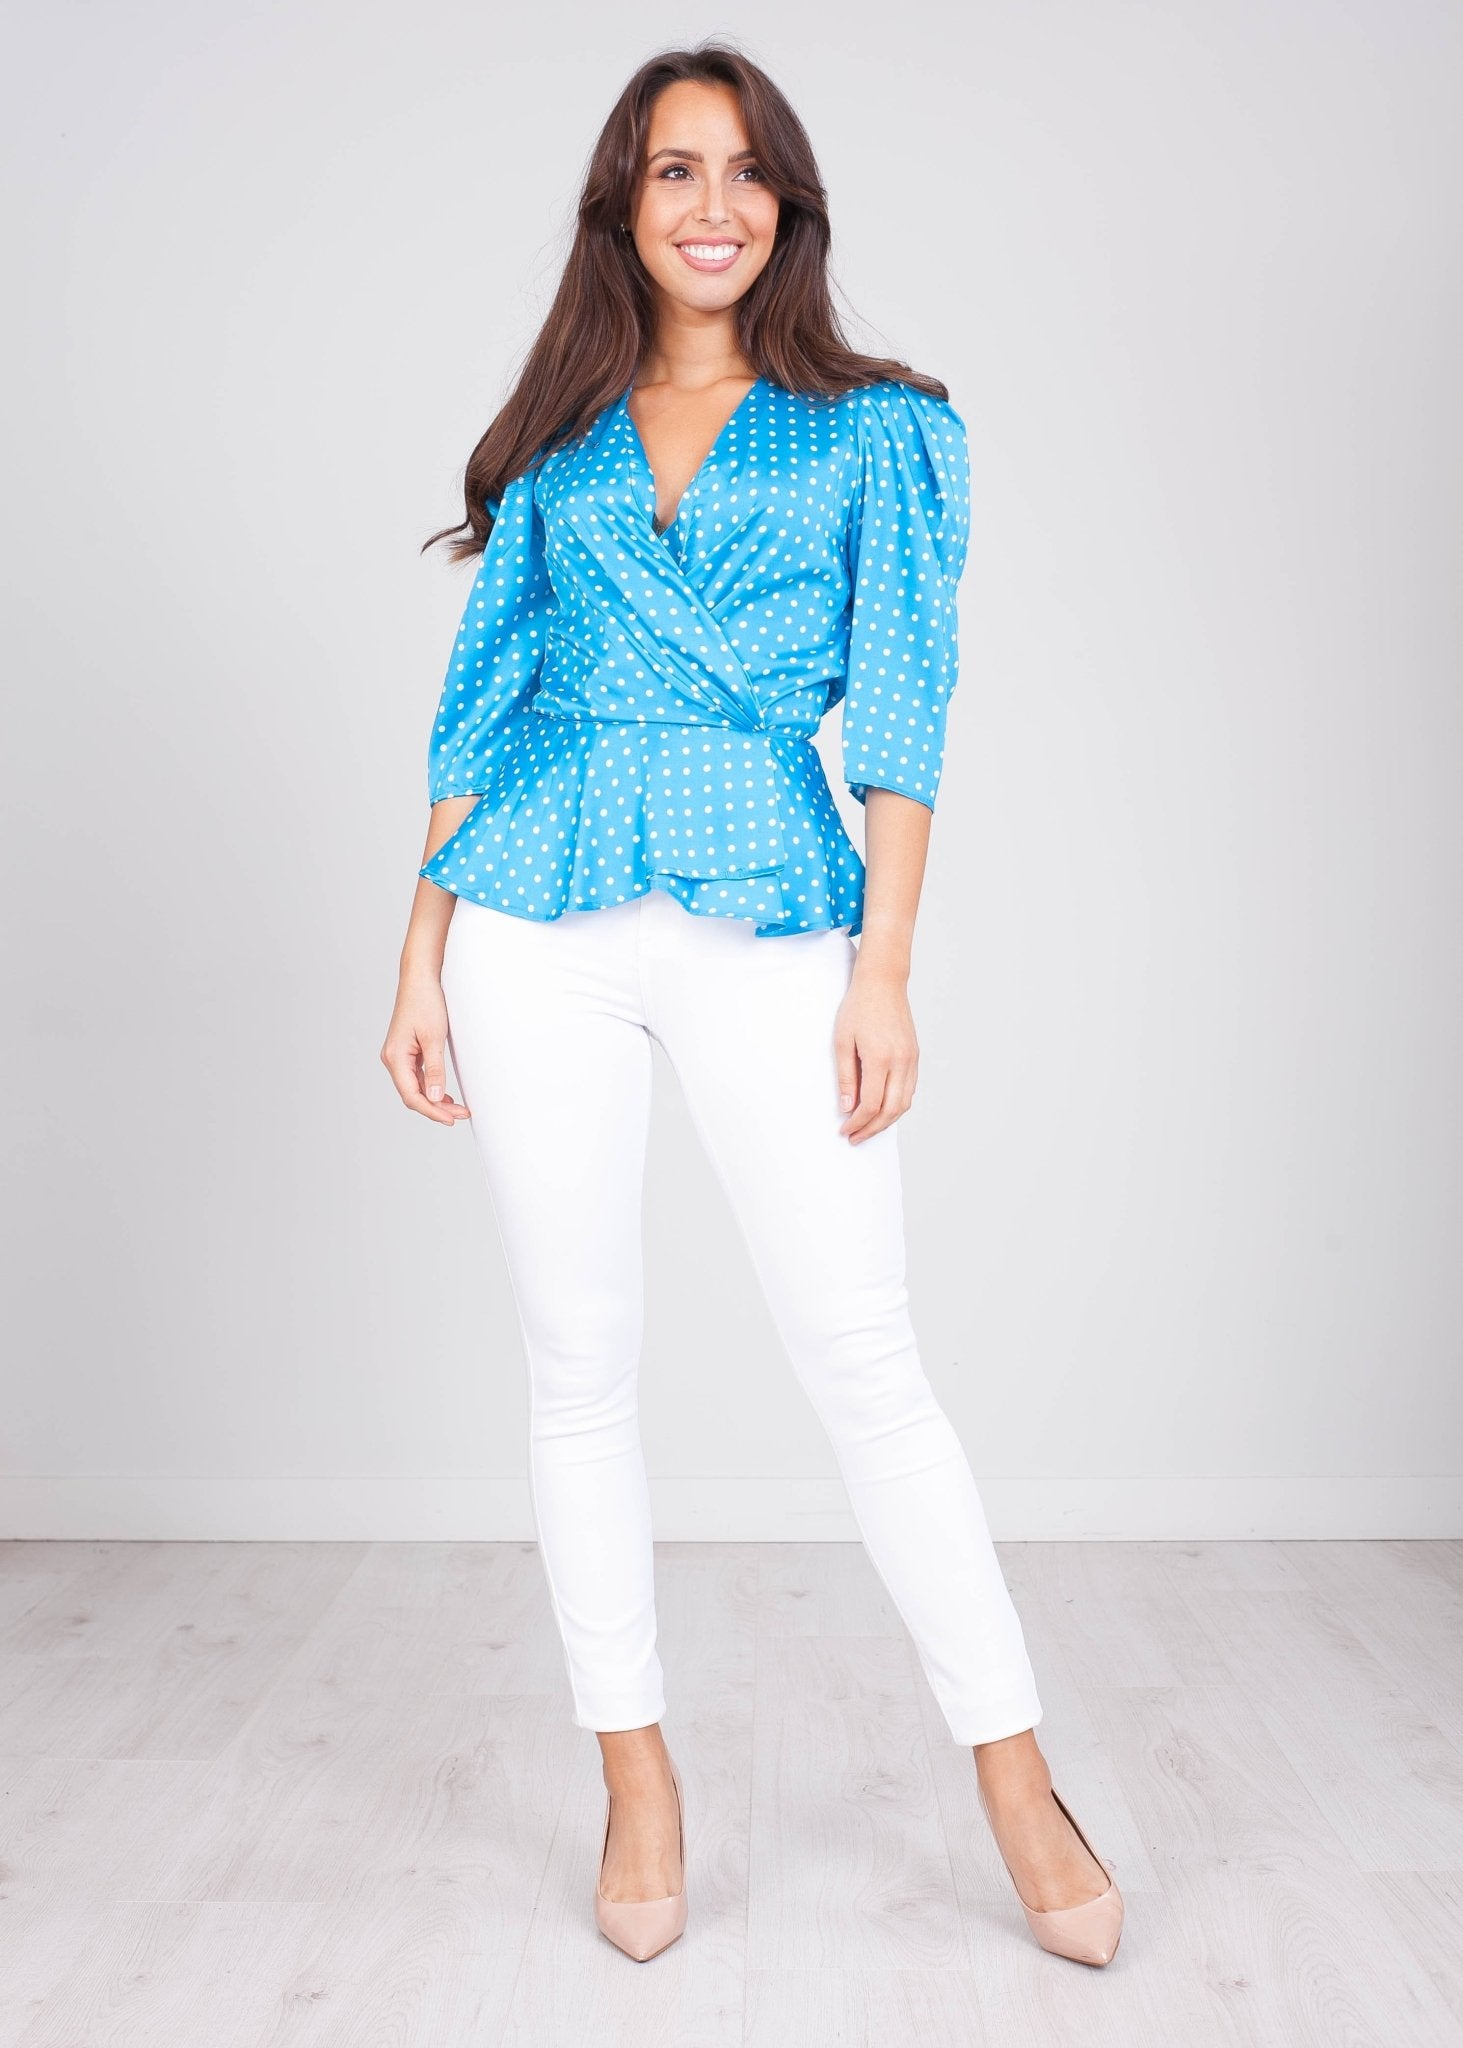 Charlee Blue Polka Dot Wrap Top - The Walk in Wardrobe